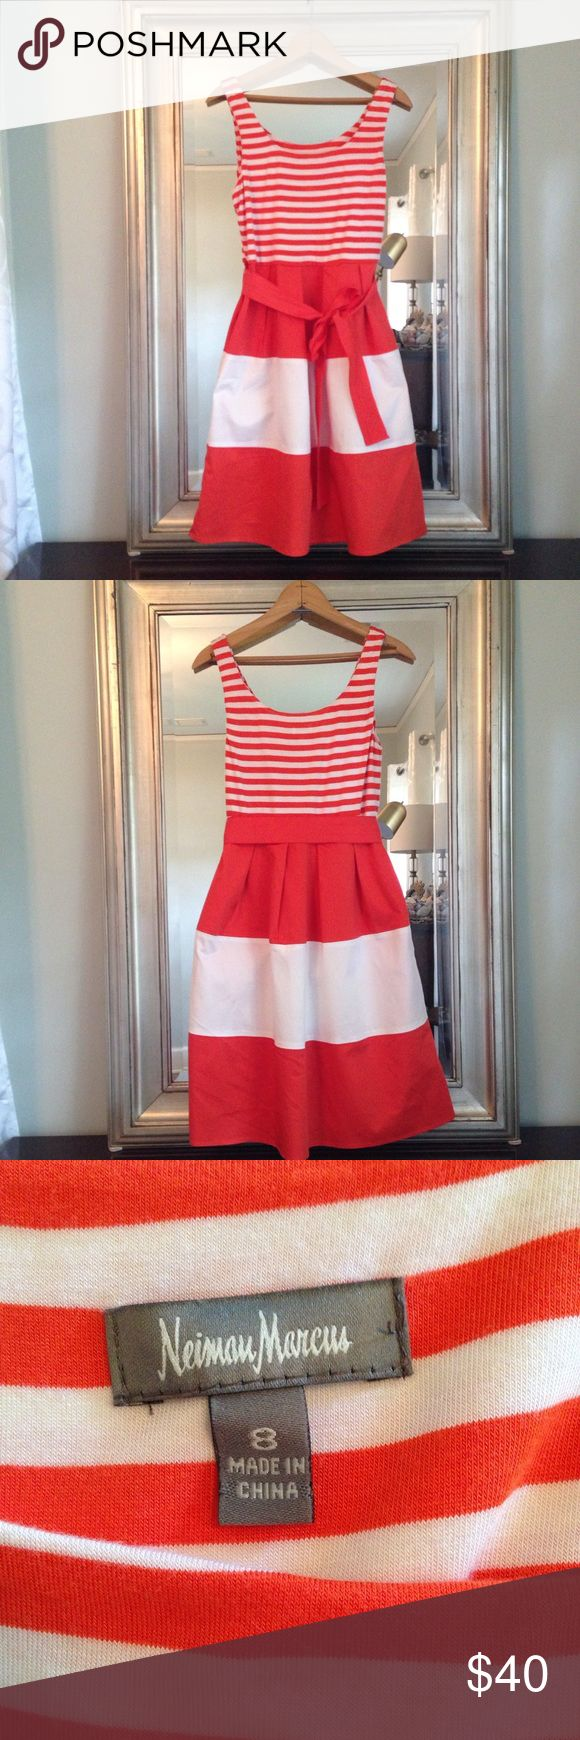 Orange and White Striped Neiman Marcus Dress This Neiman Marcus dress has been gently used but shows little wear. It has a side zipper and pockets. It is very comfortable and looks great dressed up or dressed down. Neiman Marcus Dresses Midi